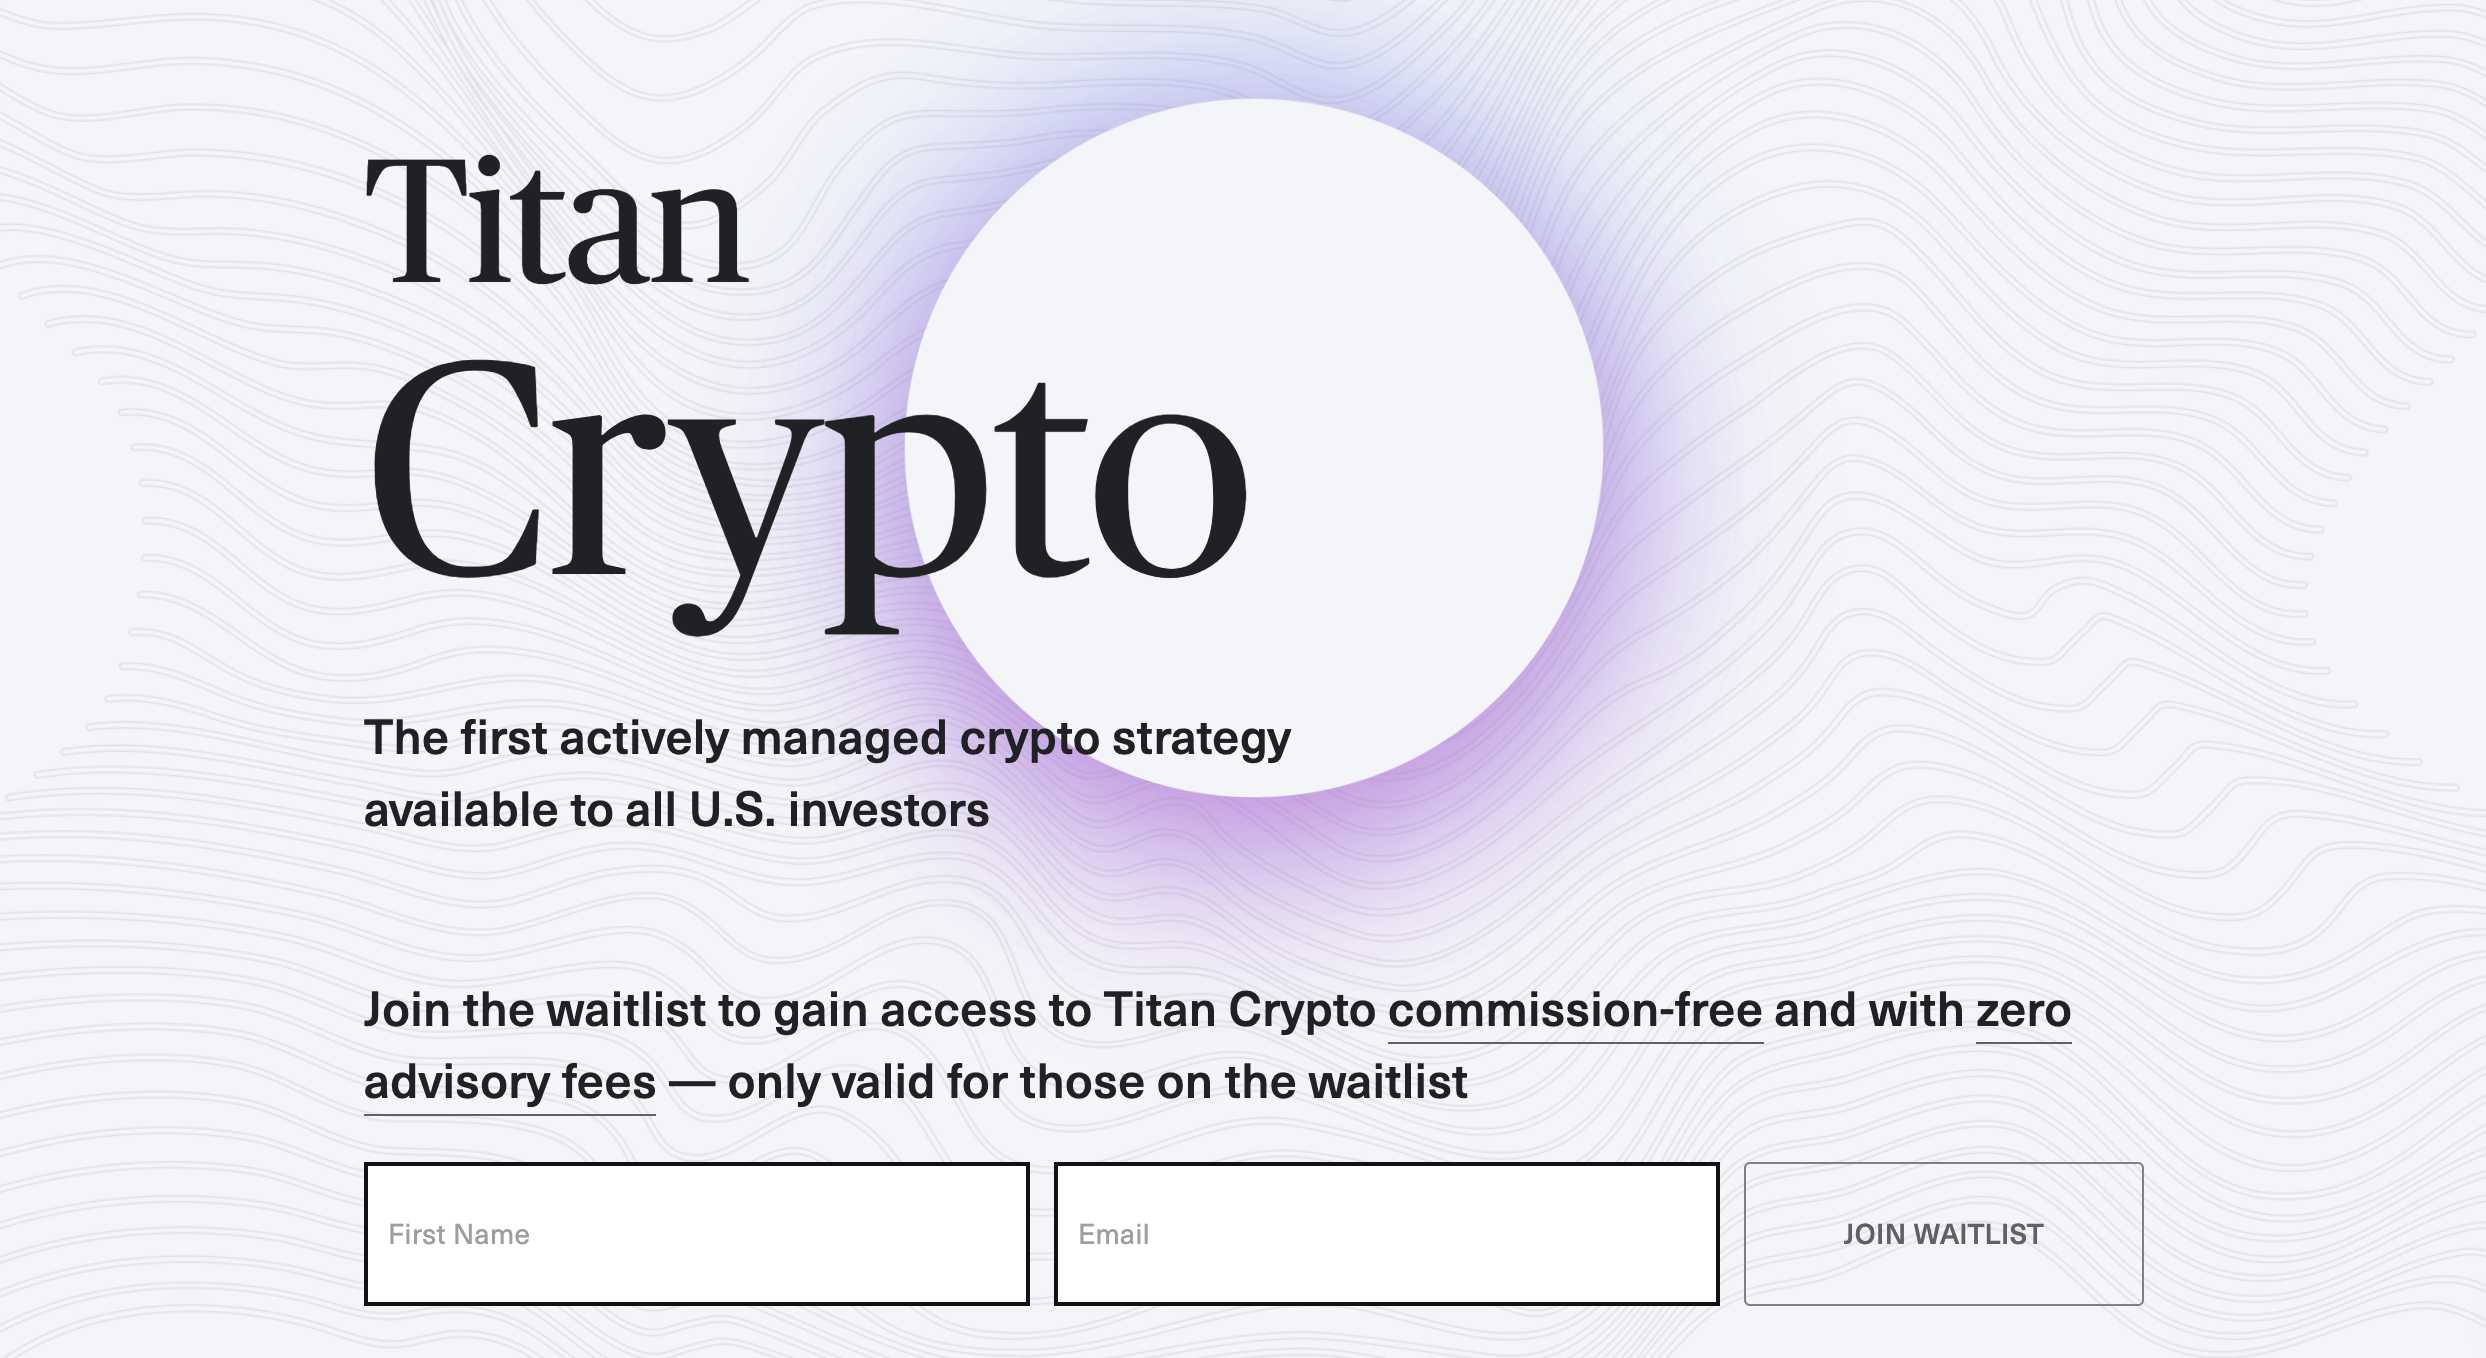 Titan is on the way to offering fully-managed crypto portfolios. With the previously high returns of their stock accounts, we see a bright future for Titan crypto. Image from titan.com/crypto.